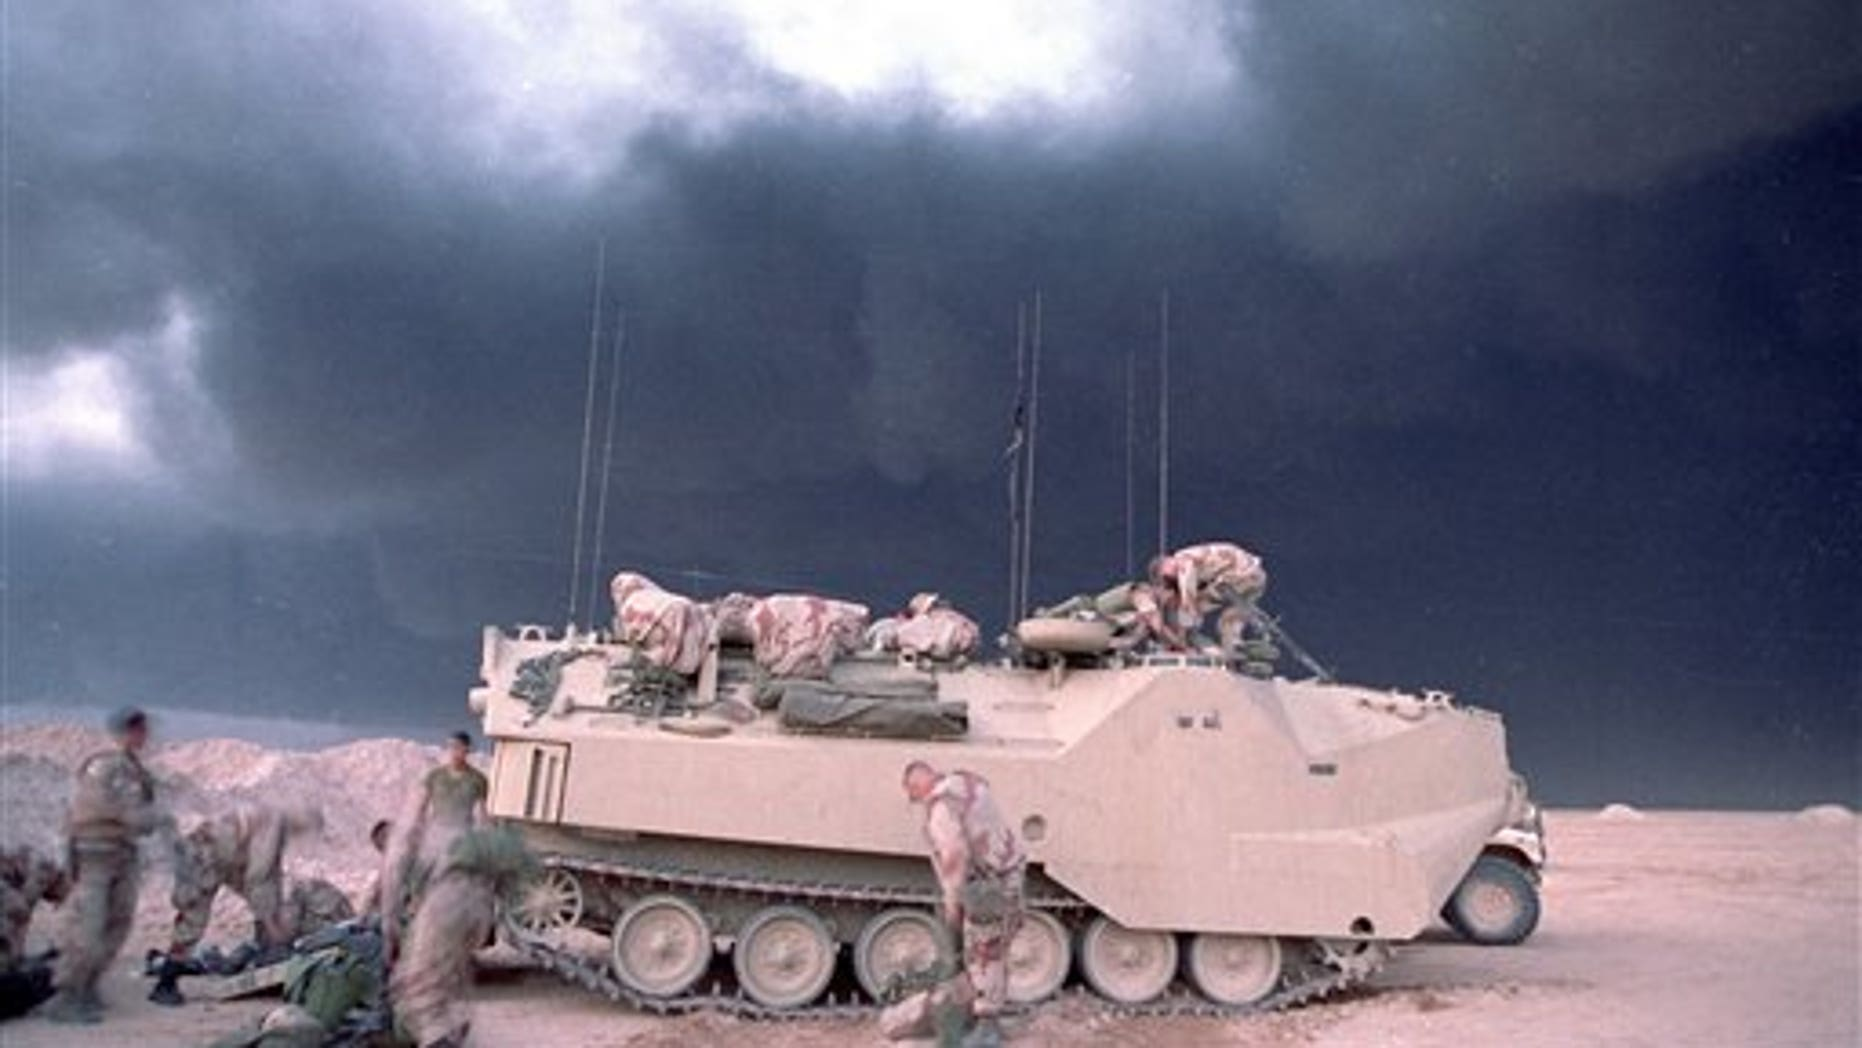 File photo from 1991 shows smoke from a burning oil well in Kuwait billowing upbehind a U.S. Marines armored vehicle.